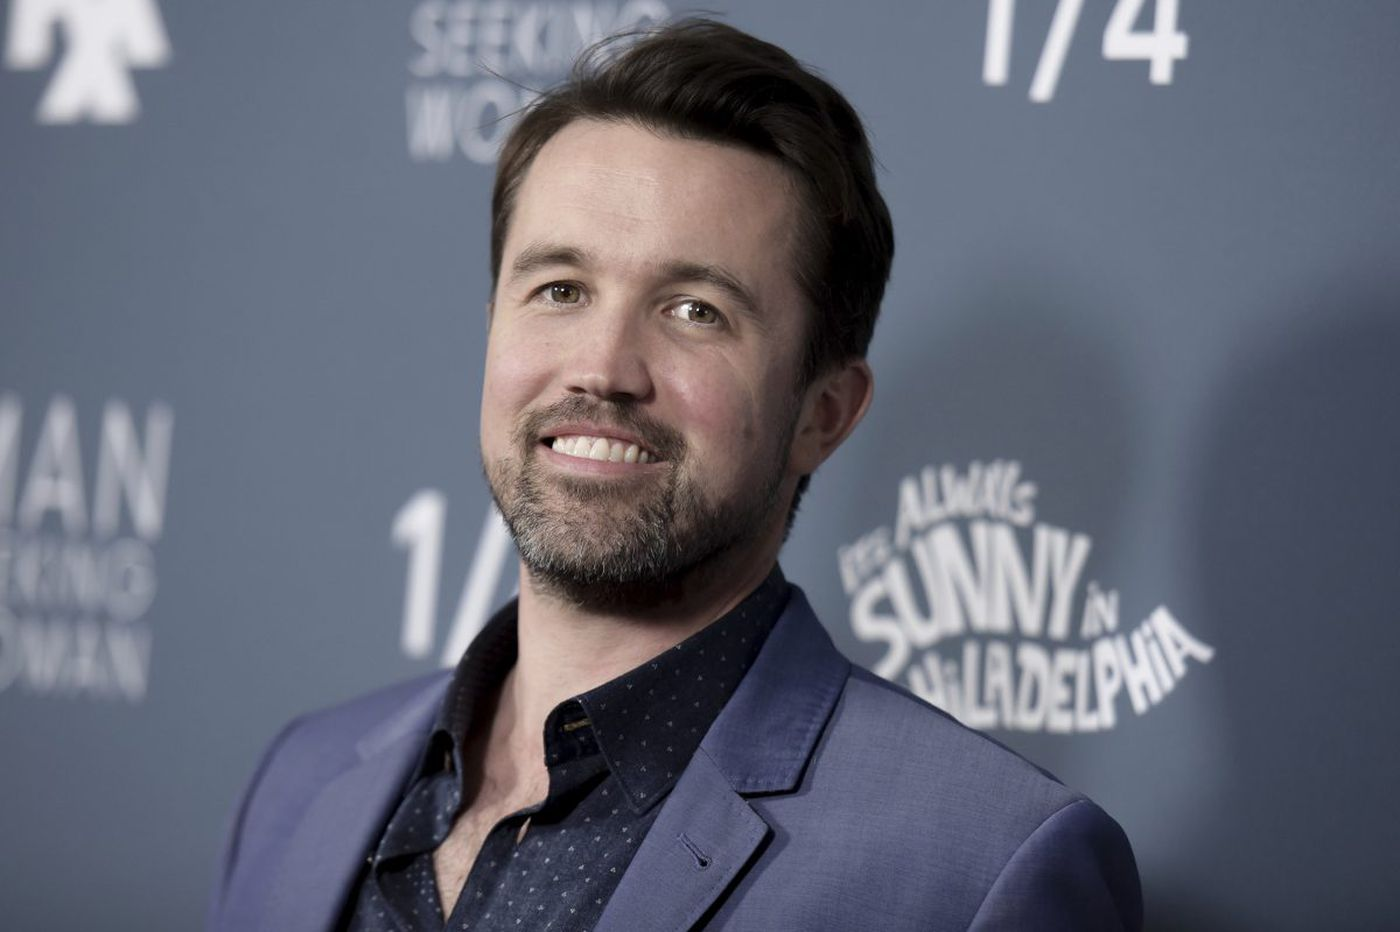 Rob McElhenney is the greatest living Philadelphian. Let's build a monument to him